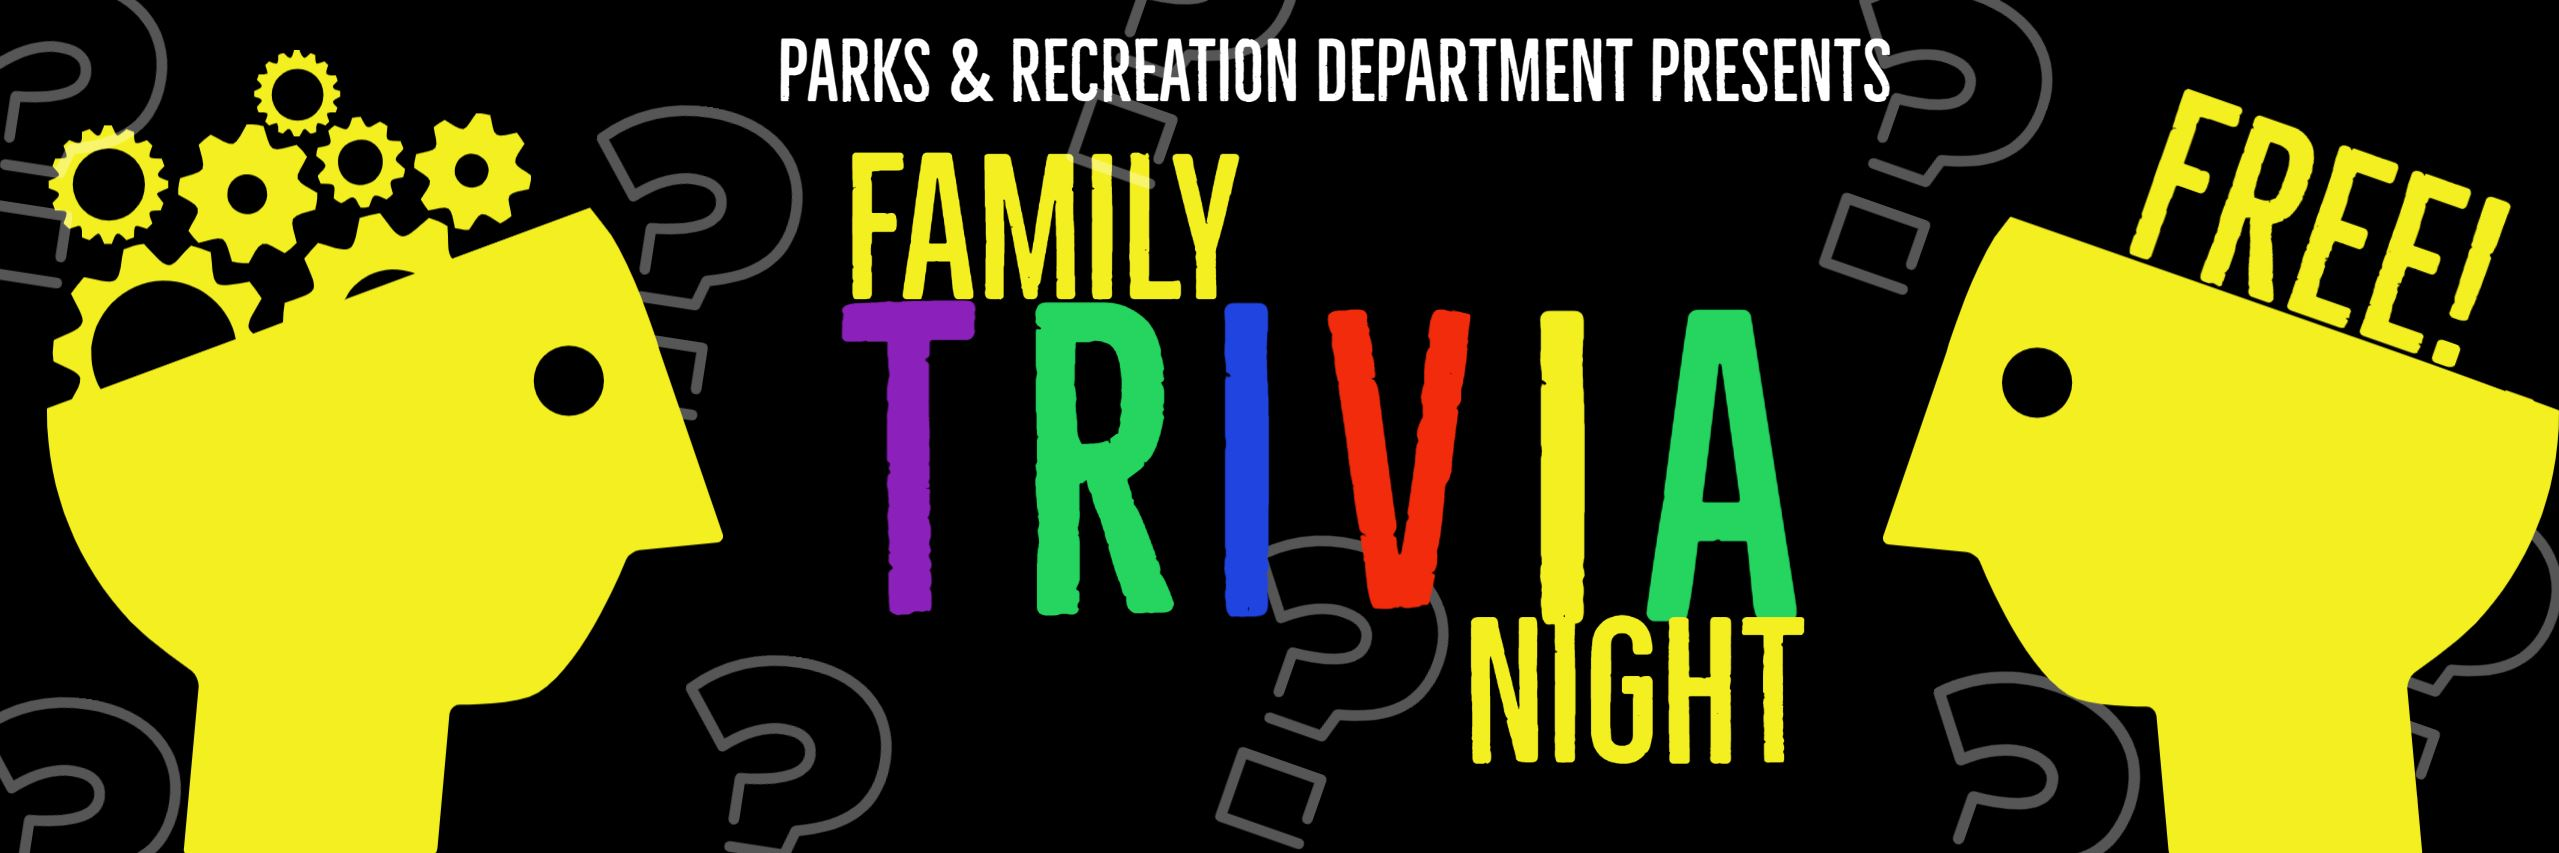 Family Trivia Night (2)